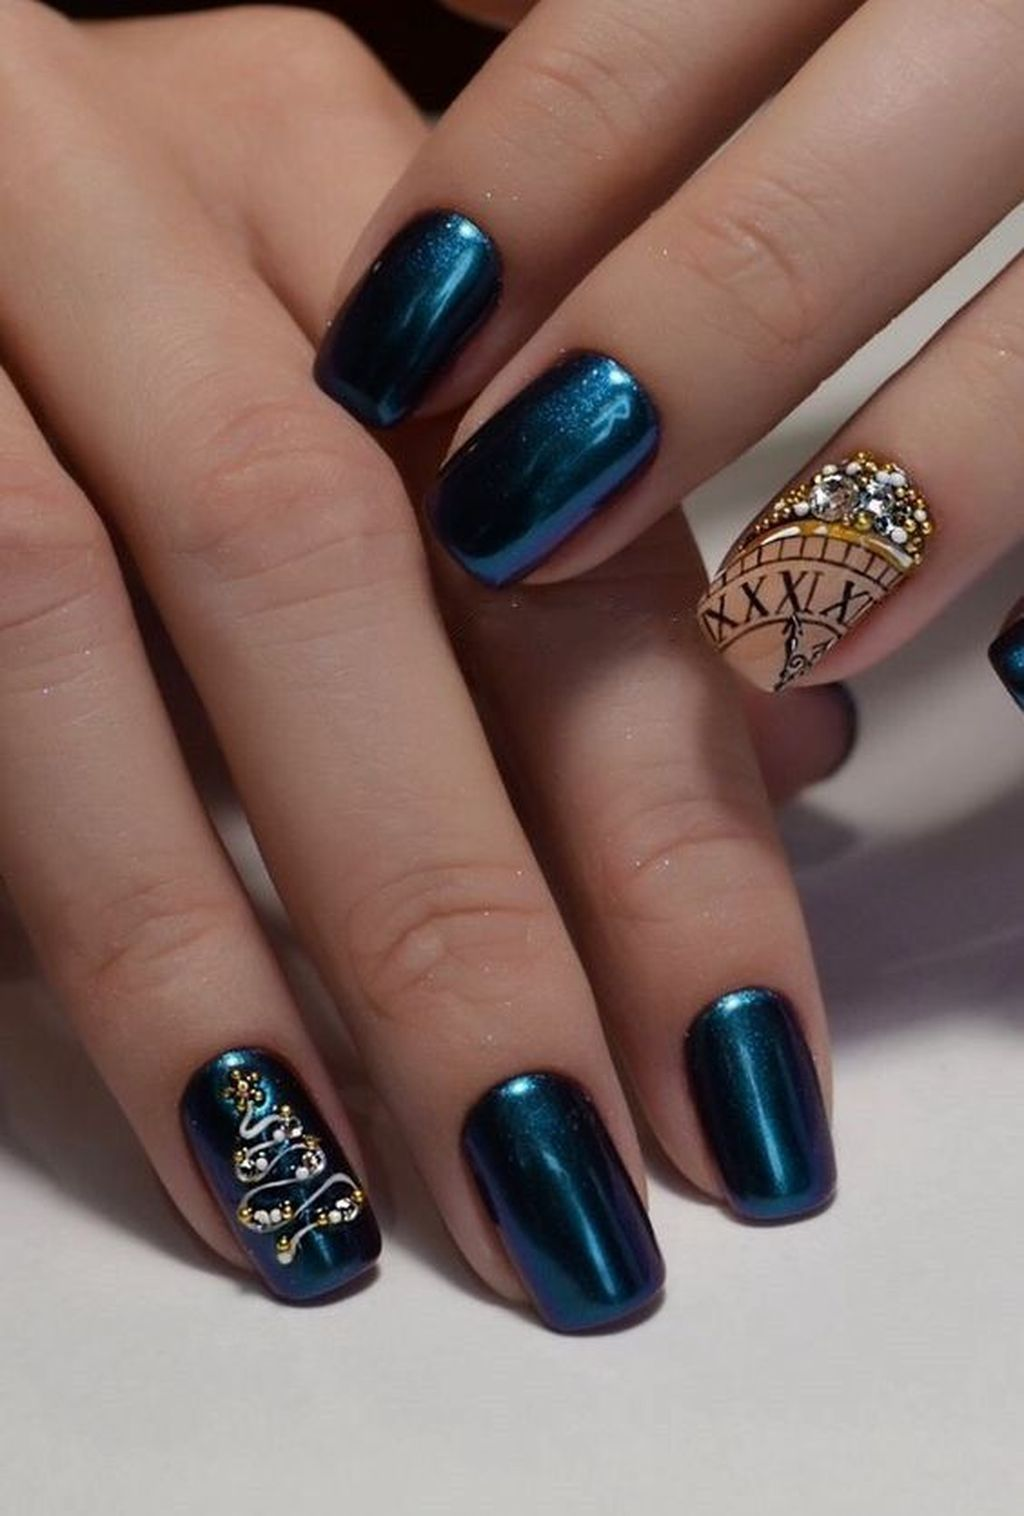 50 Exciting Ideas For New Years Nails To Warm Up Your Holiday Mood New Years Nail Art New Year S Nails New Years Nail Designs